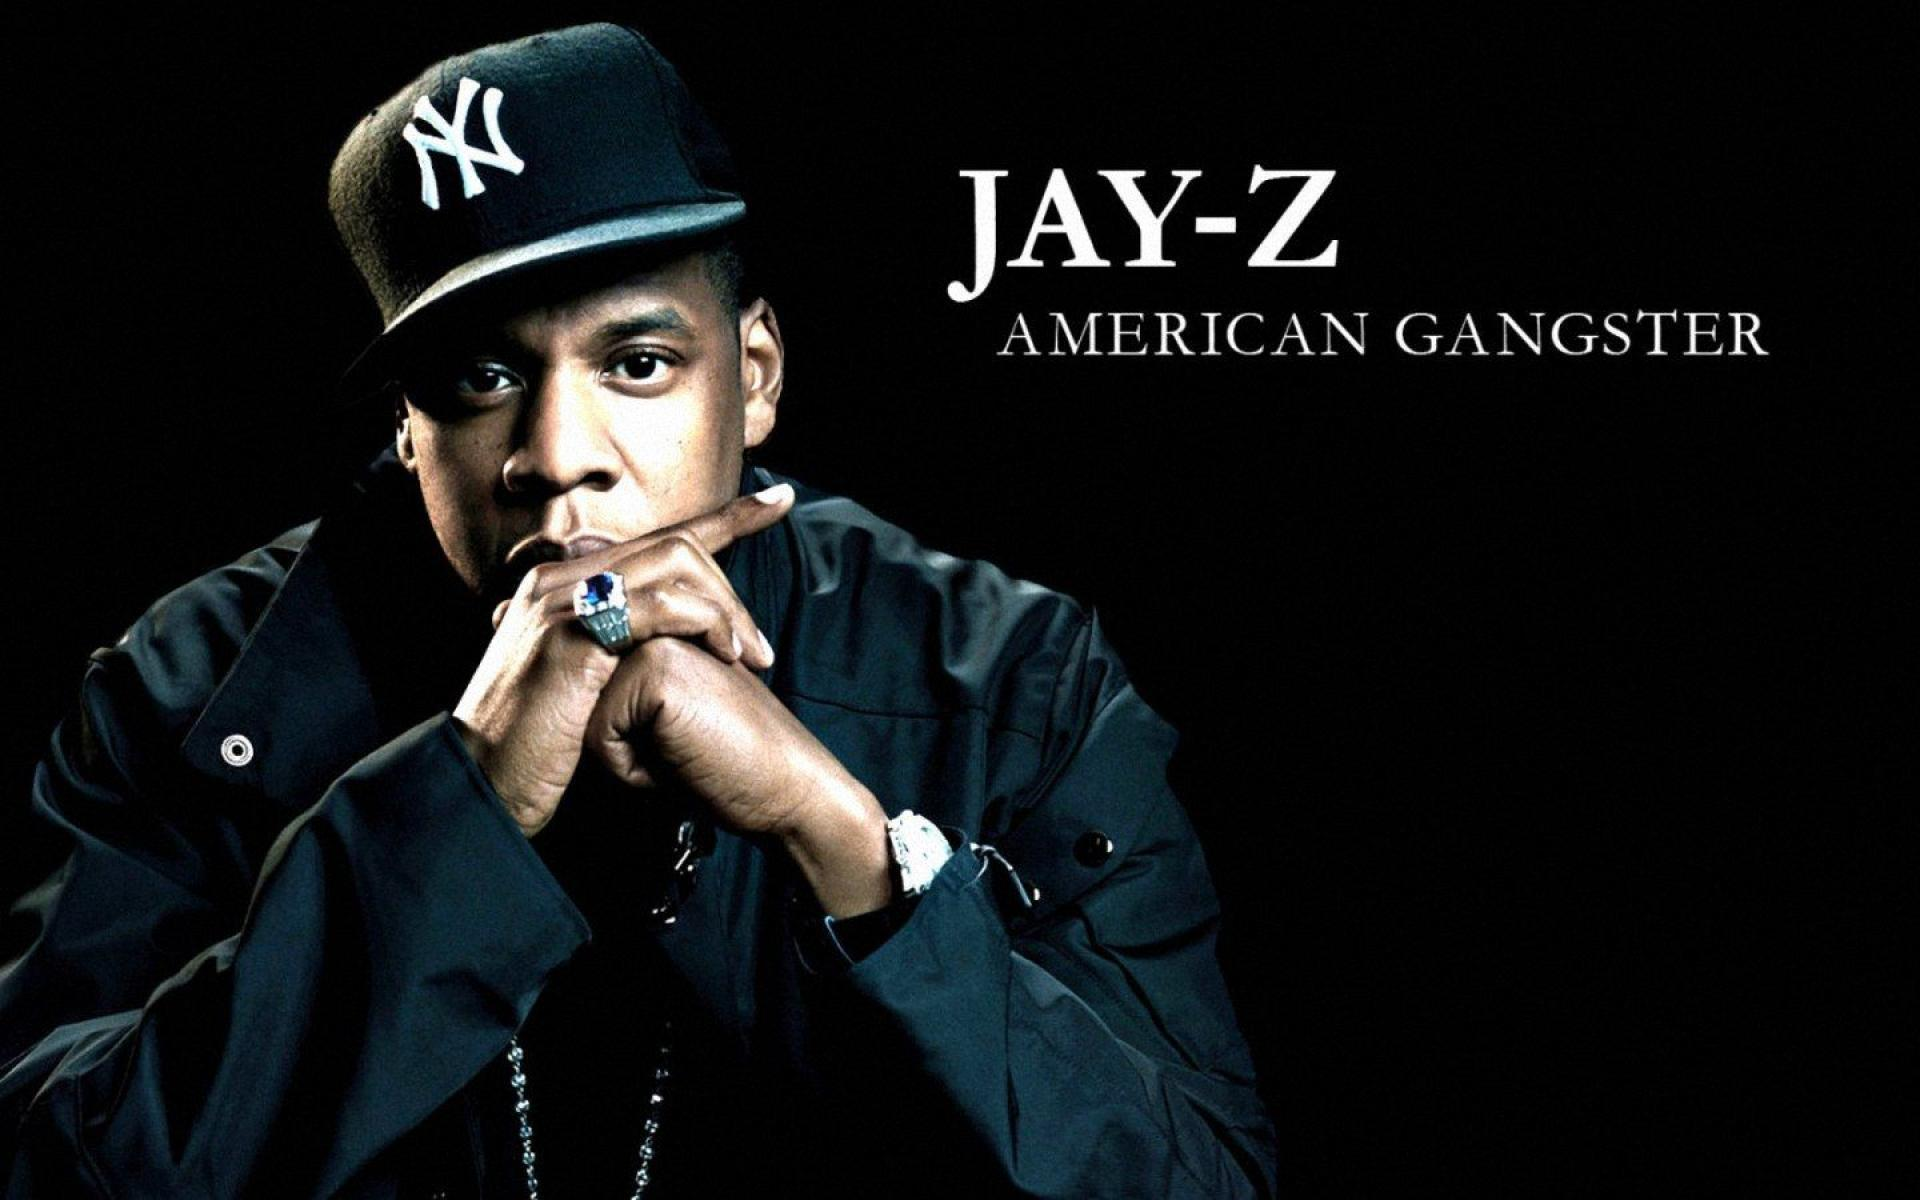 Wallpapers of Jay Z